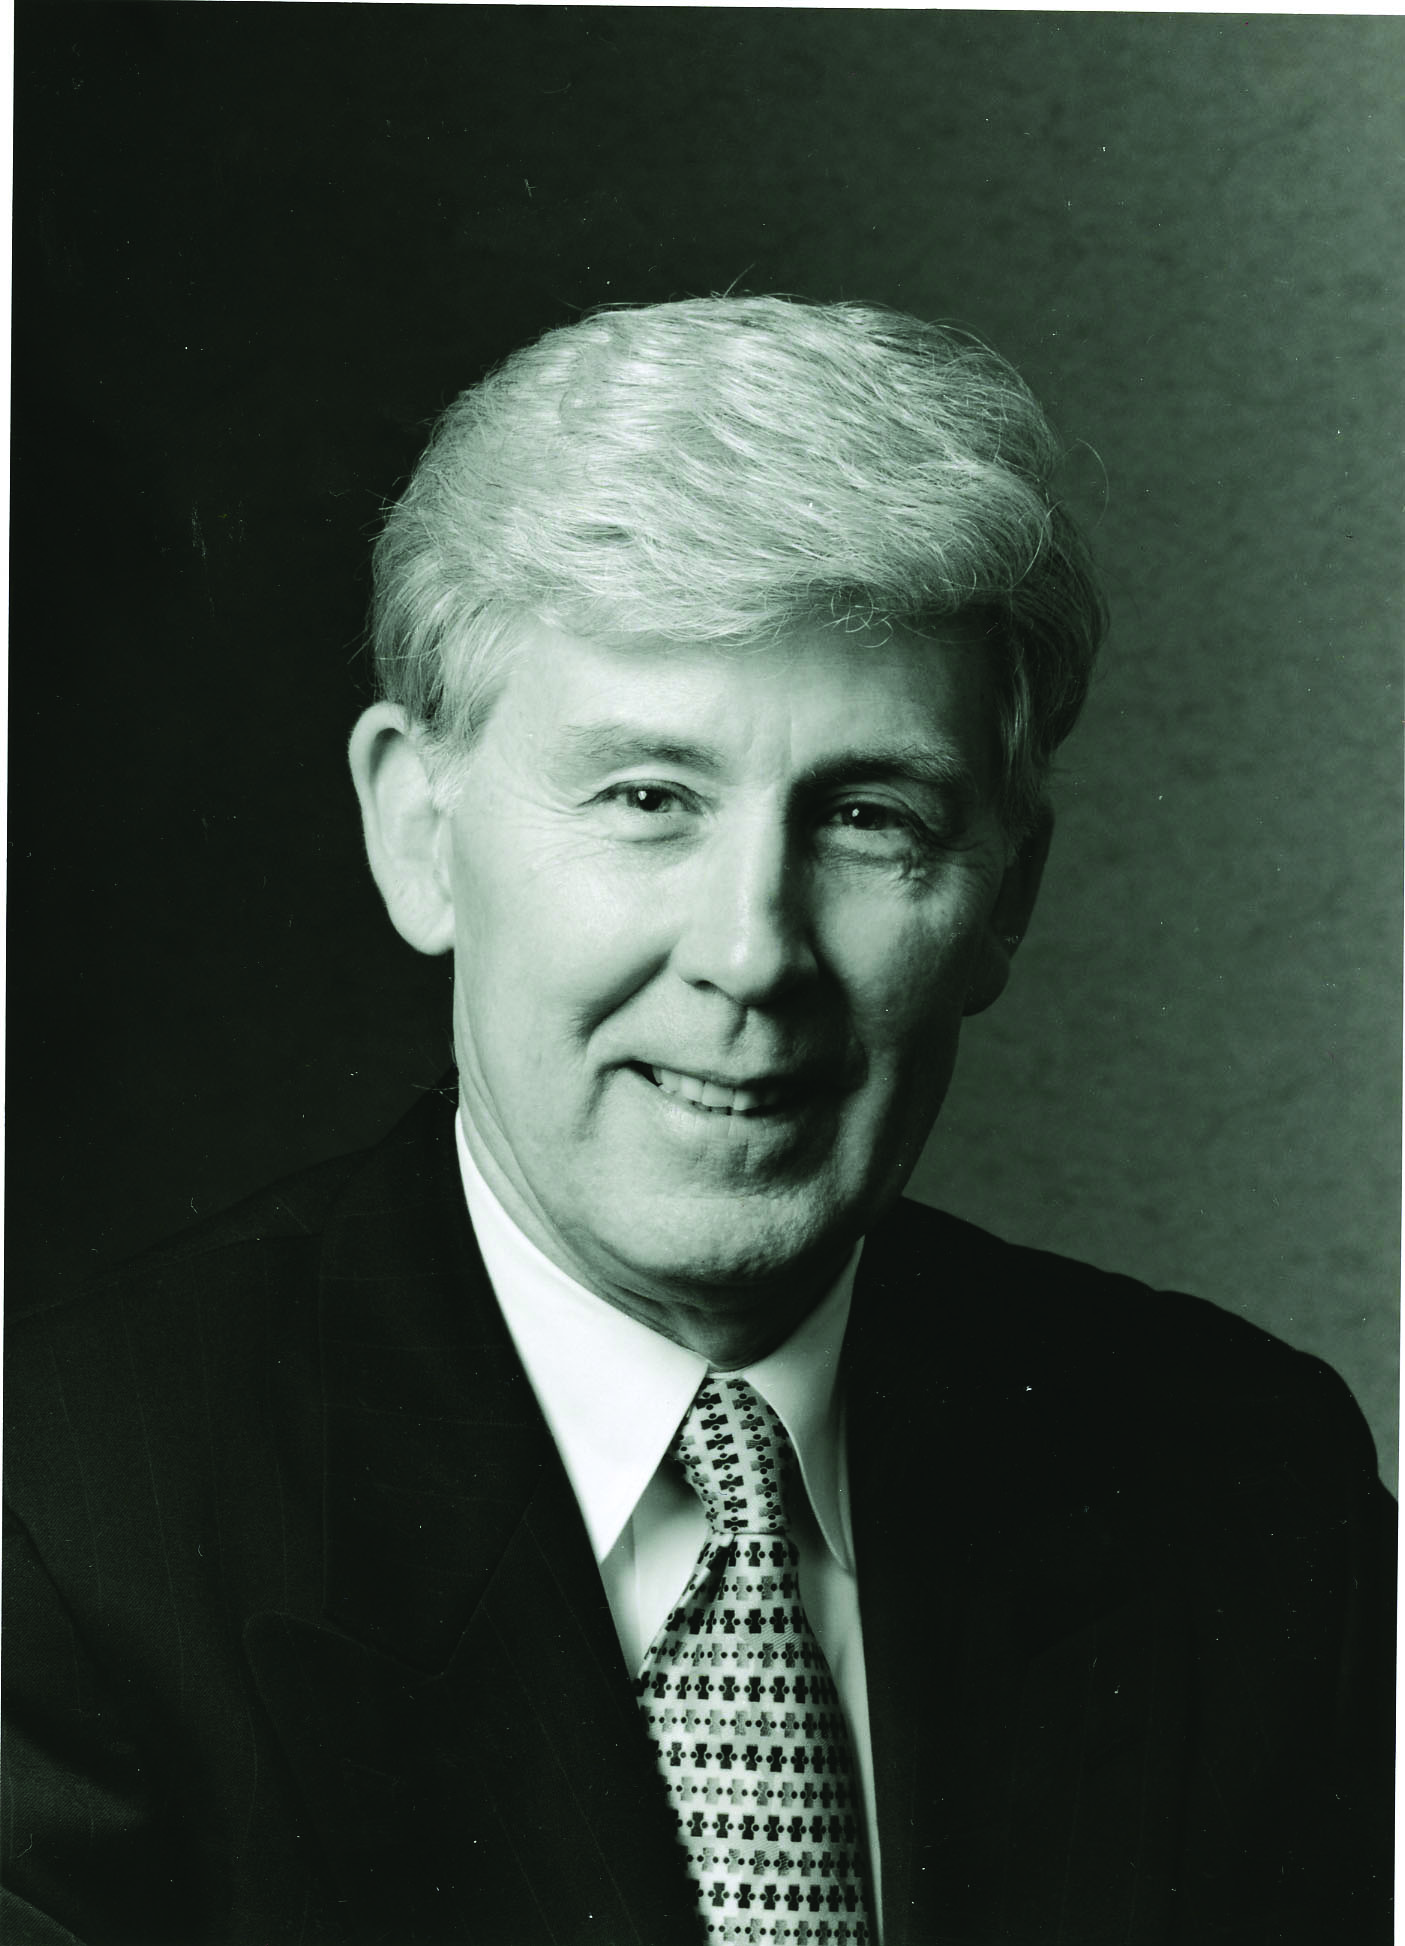 Robert K. Luther to be honored with Lake Land College Distinguished Service Award at the 50th anniversary Commencement